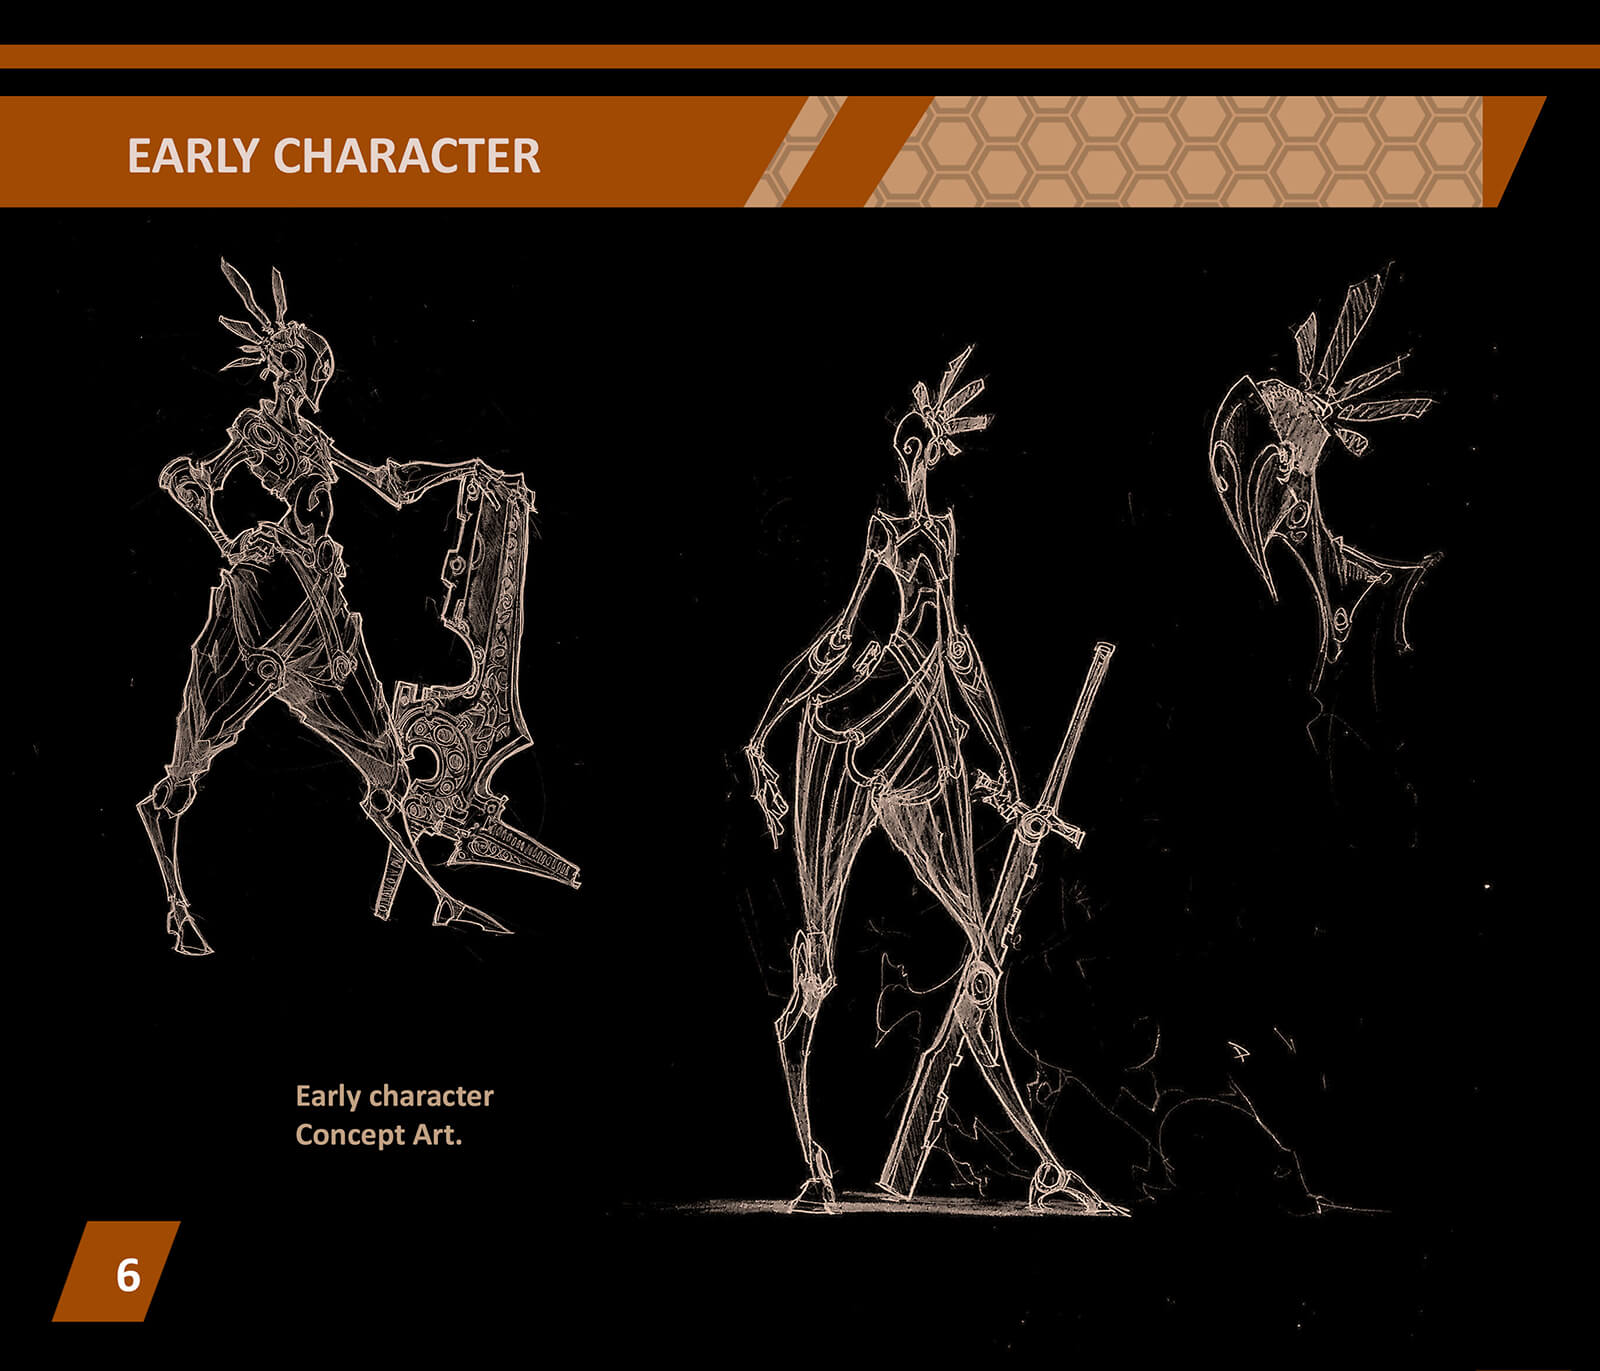 Character design concept sketches, a stylized warrior in ornate armor holds elaborate melee weapons